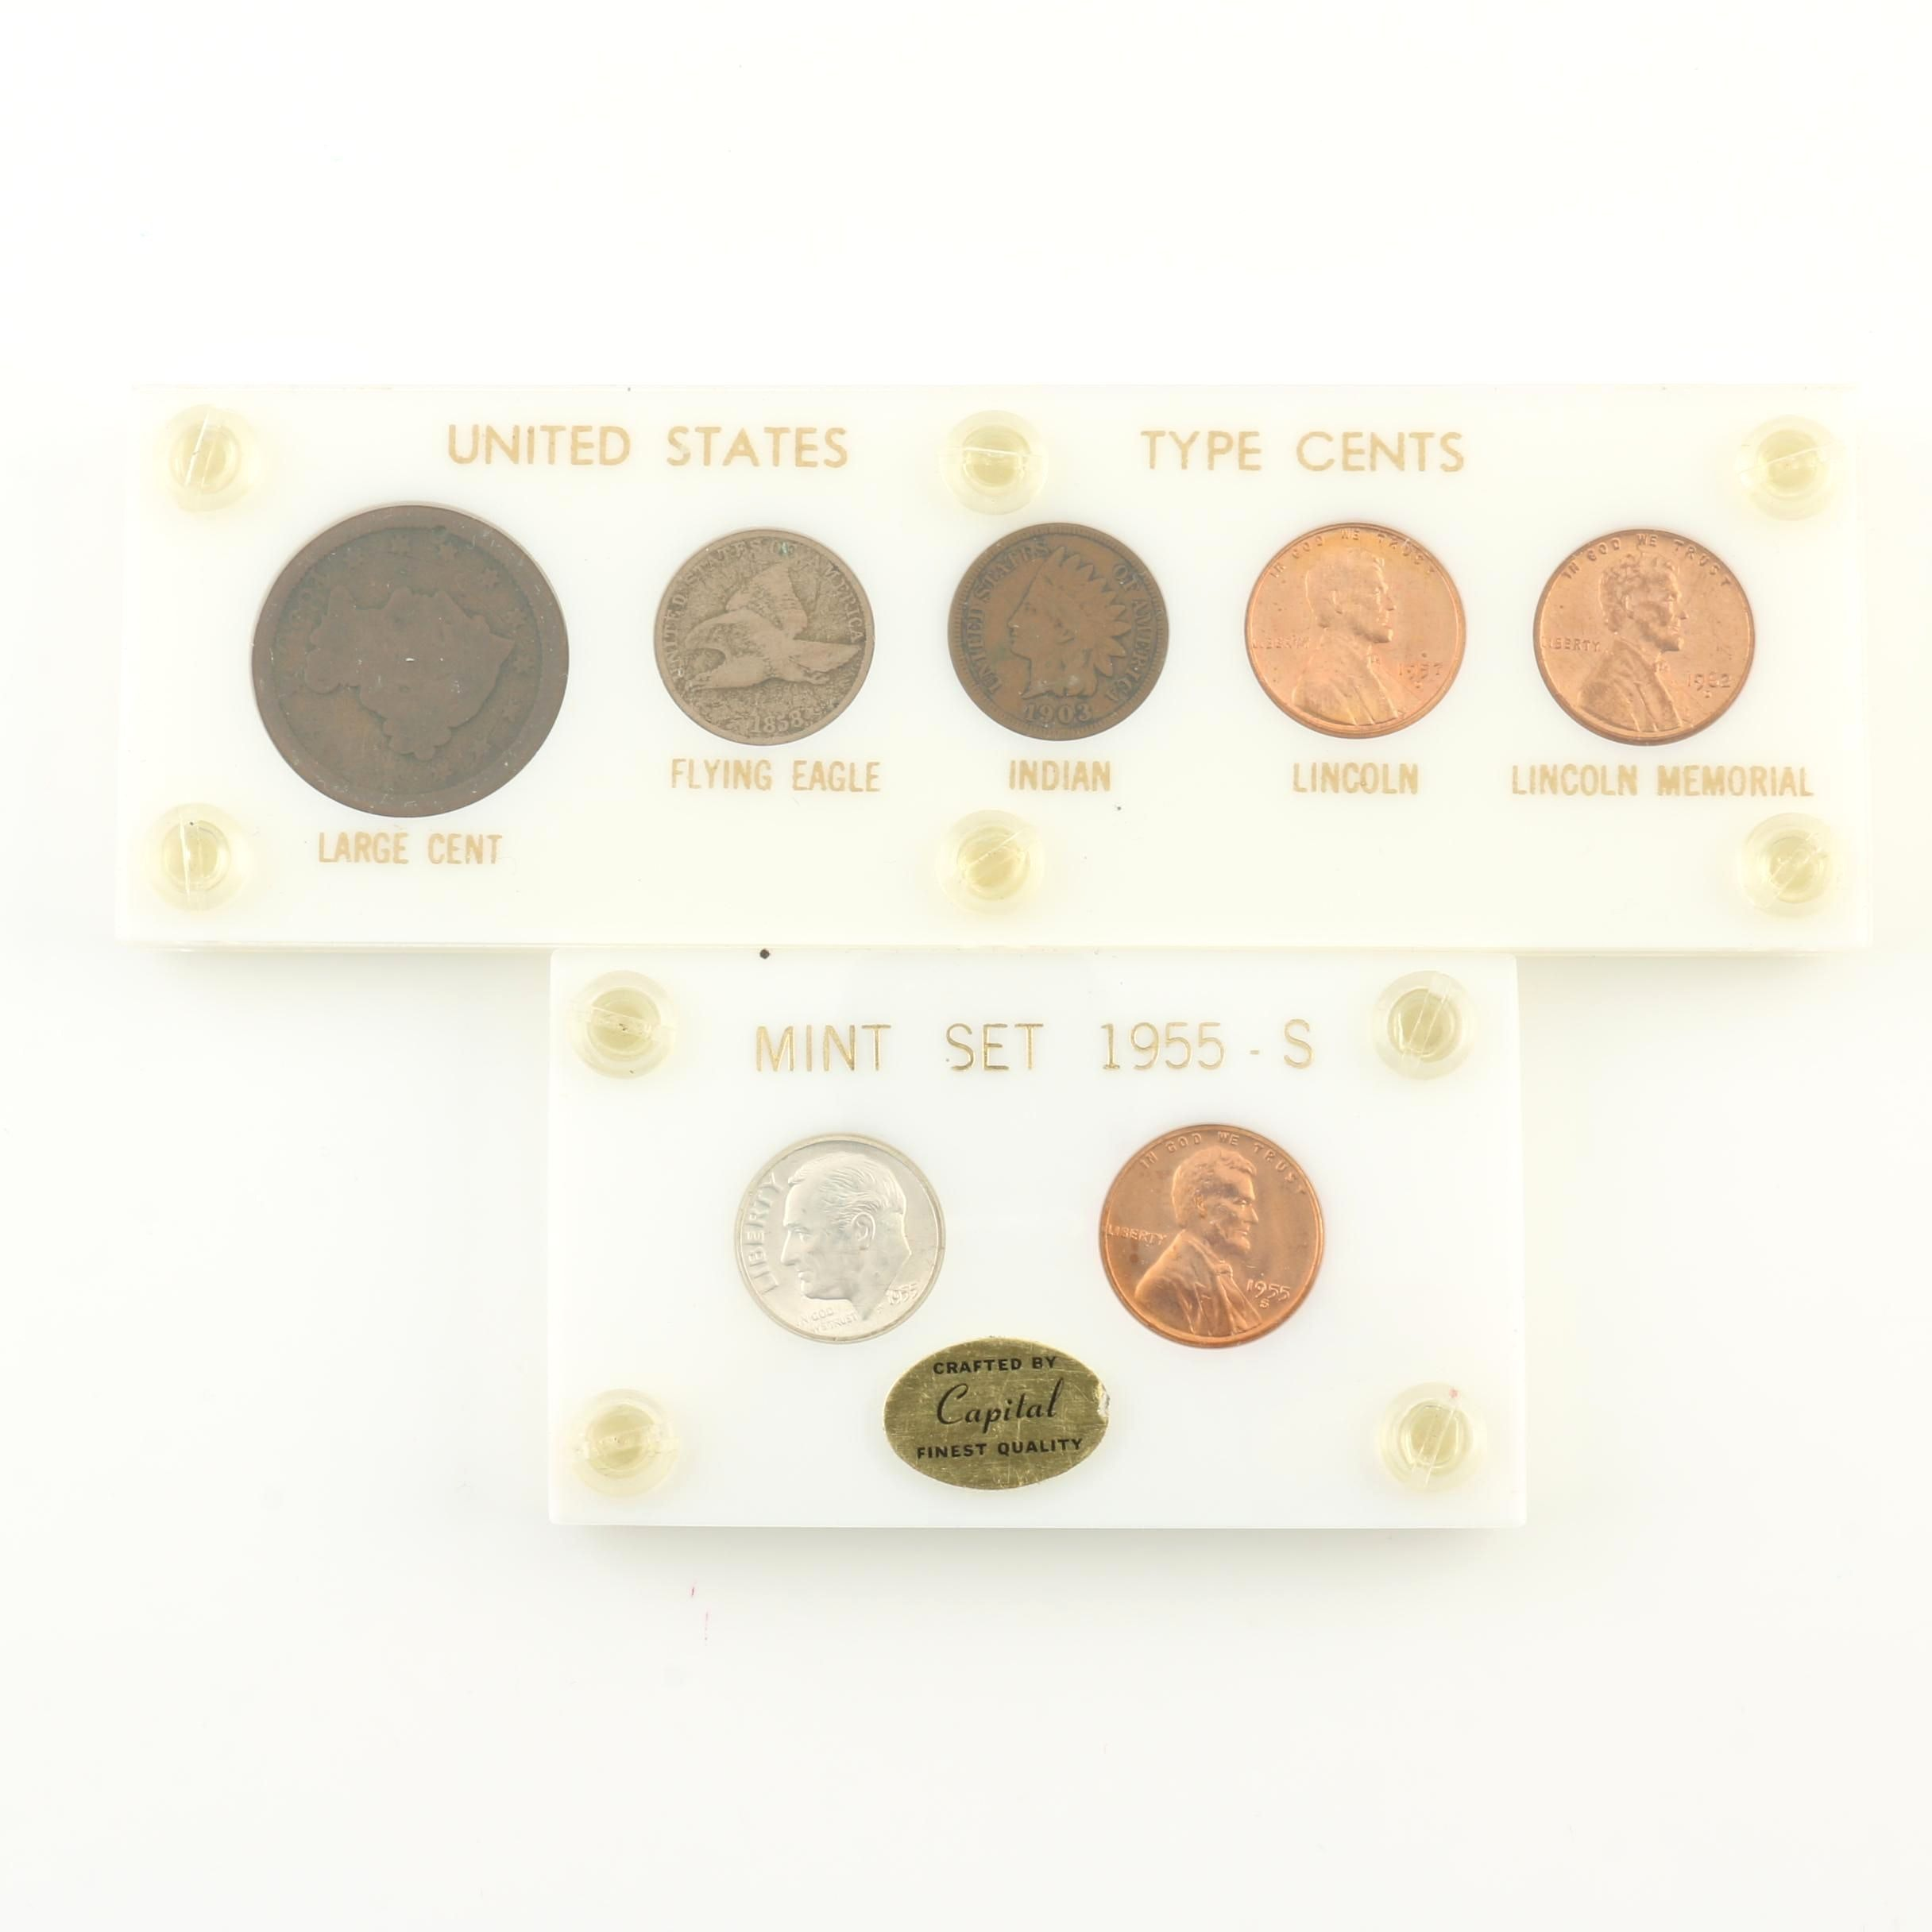 1955-S Mint Set and United States Type Cents Coin Set